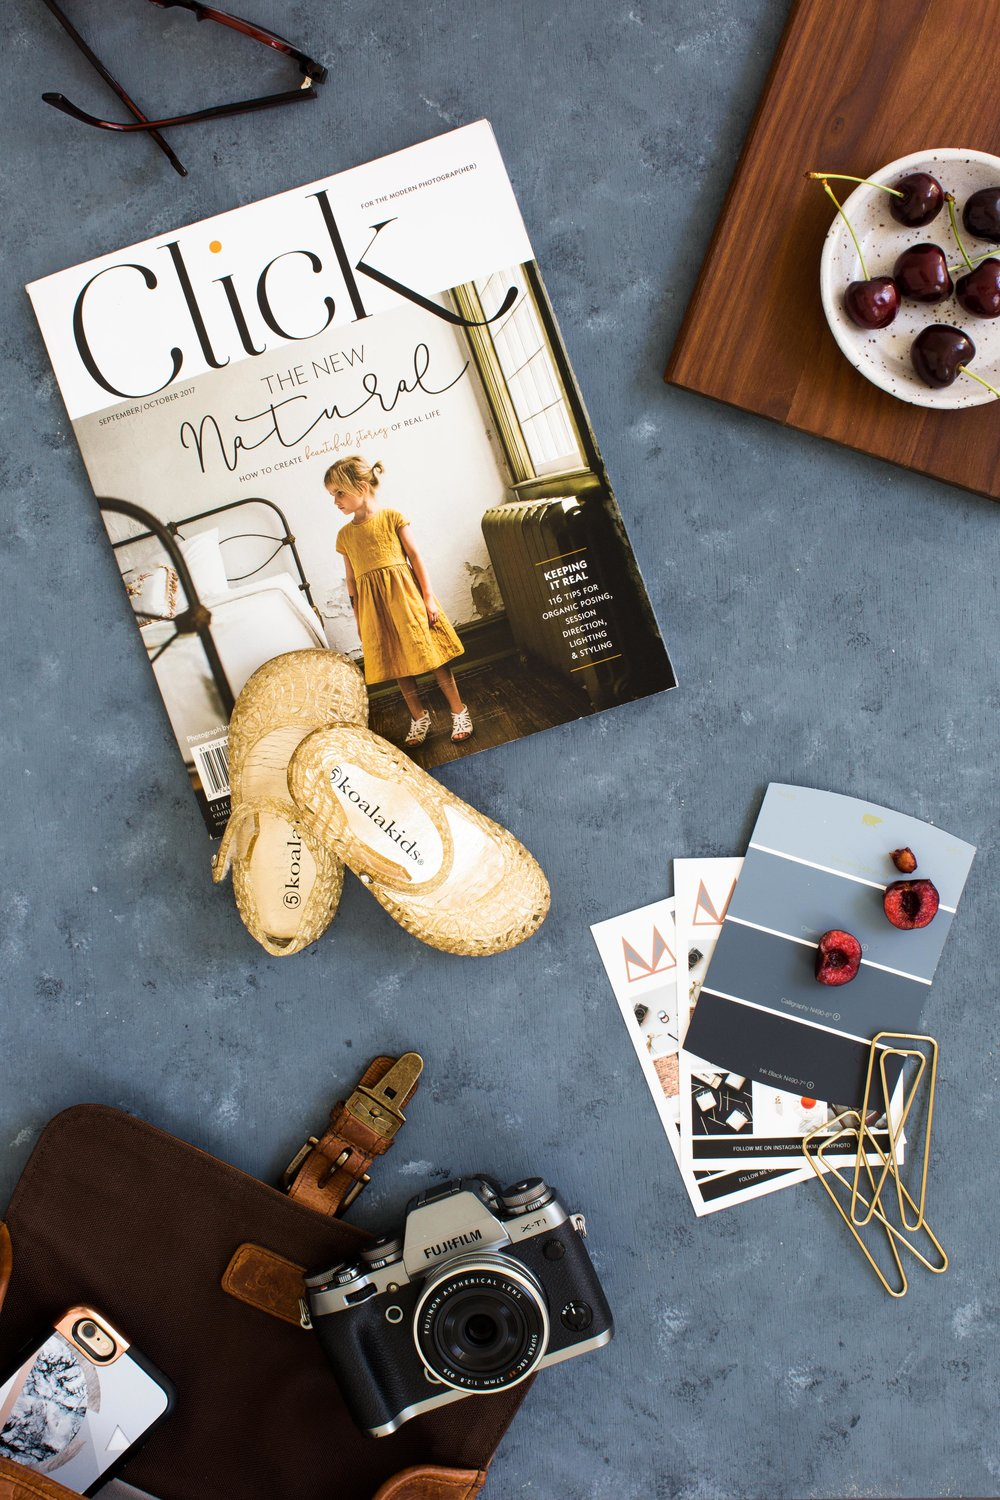 ClickMag-IG-Flatlay-Cherries-Kimberly-Murray-02.jpg